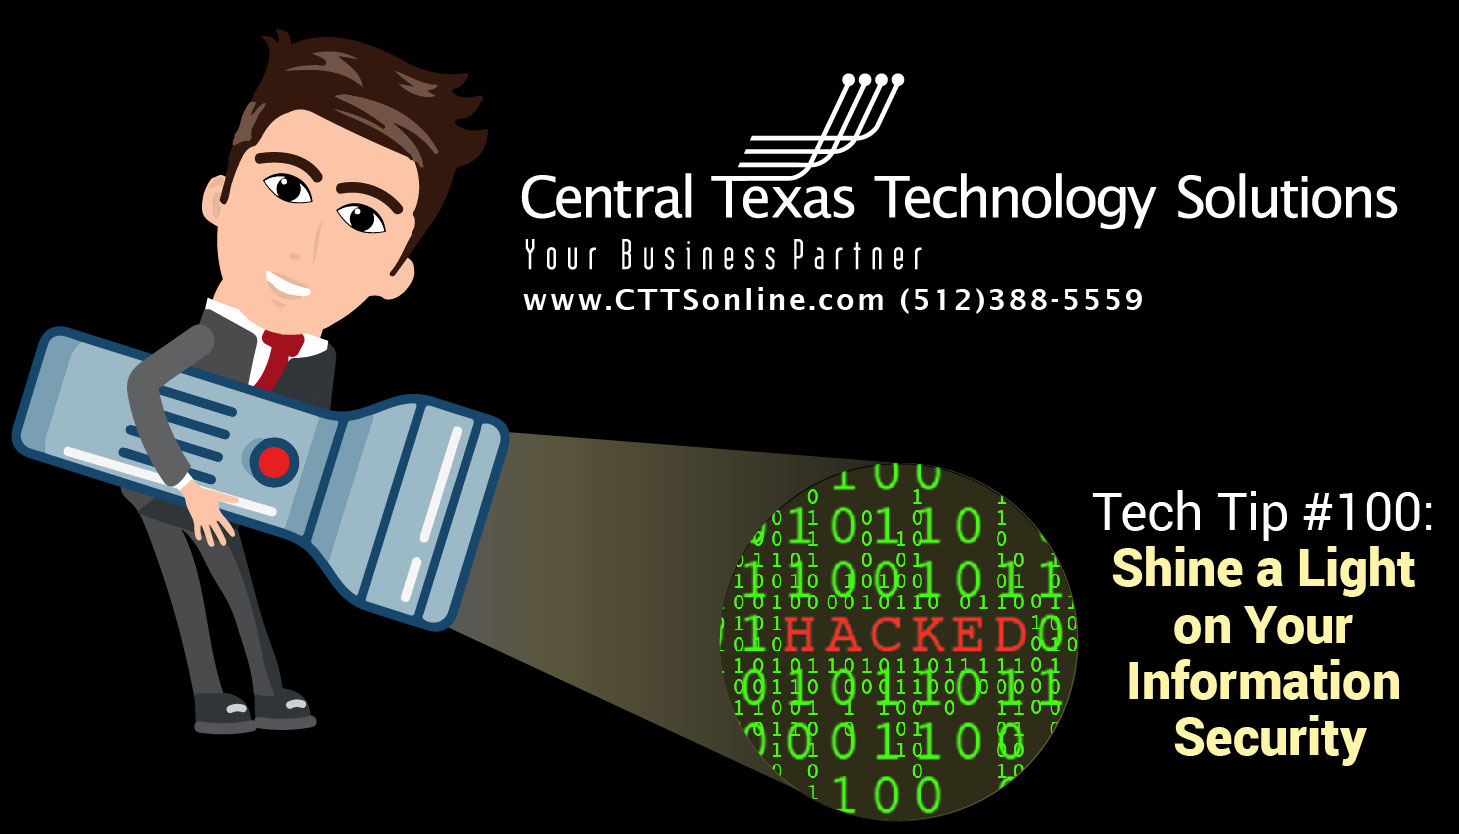 information security Georgetown TX